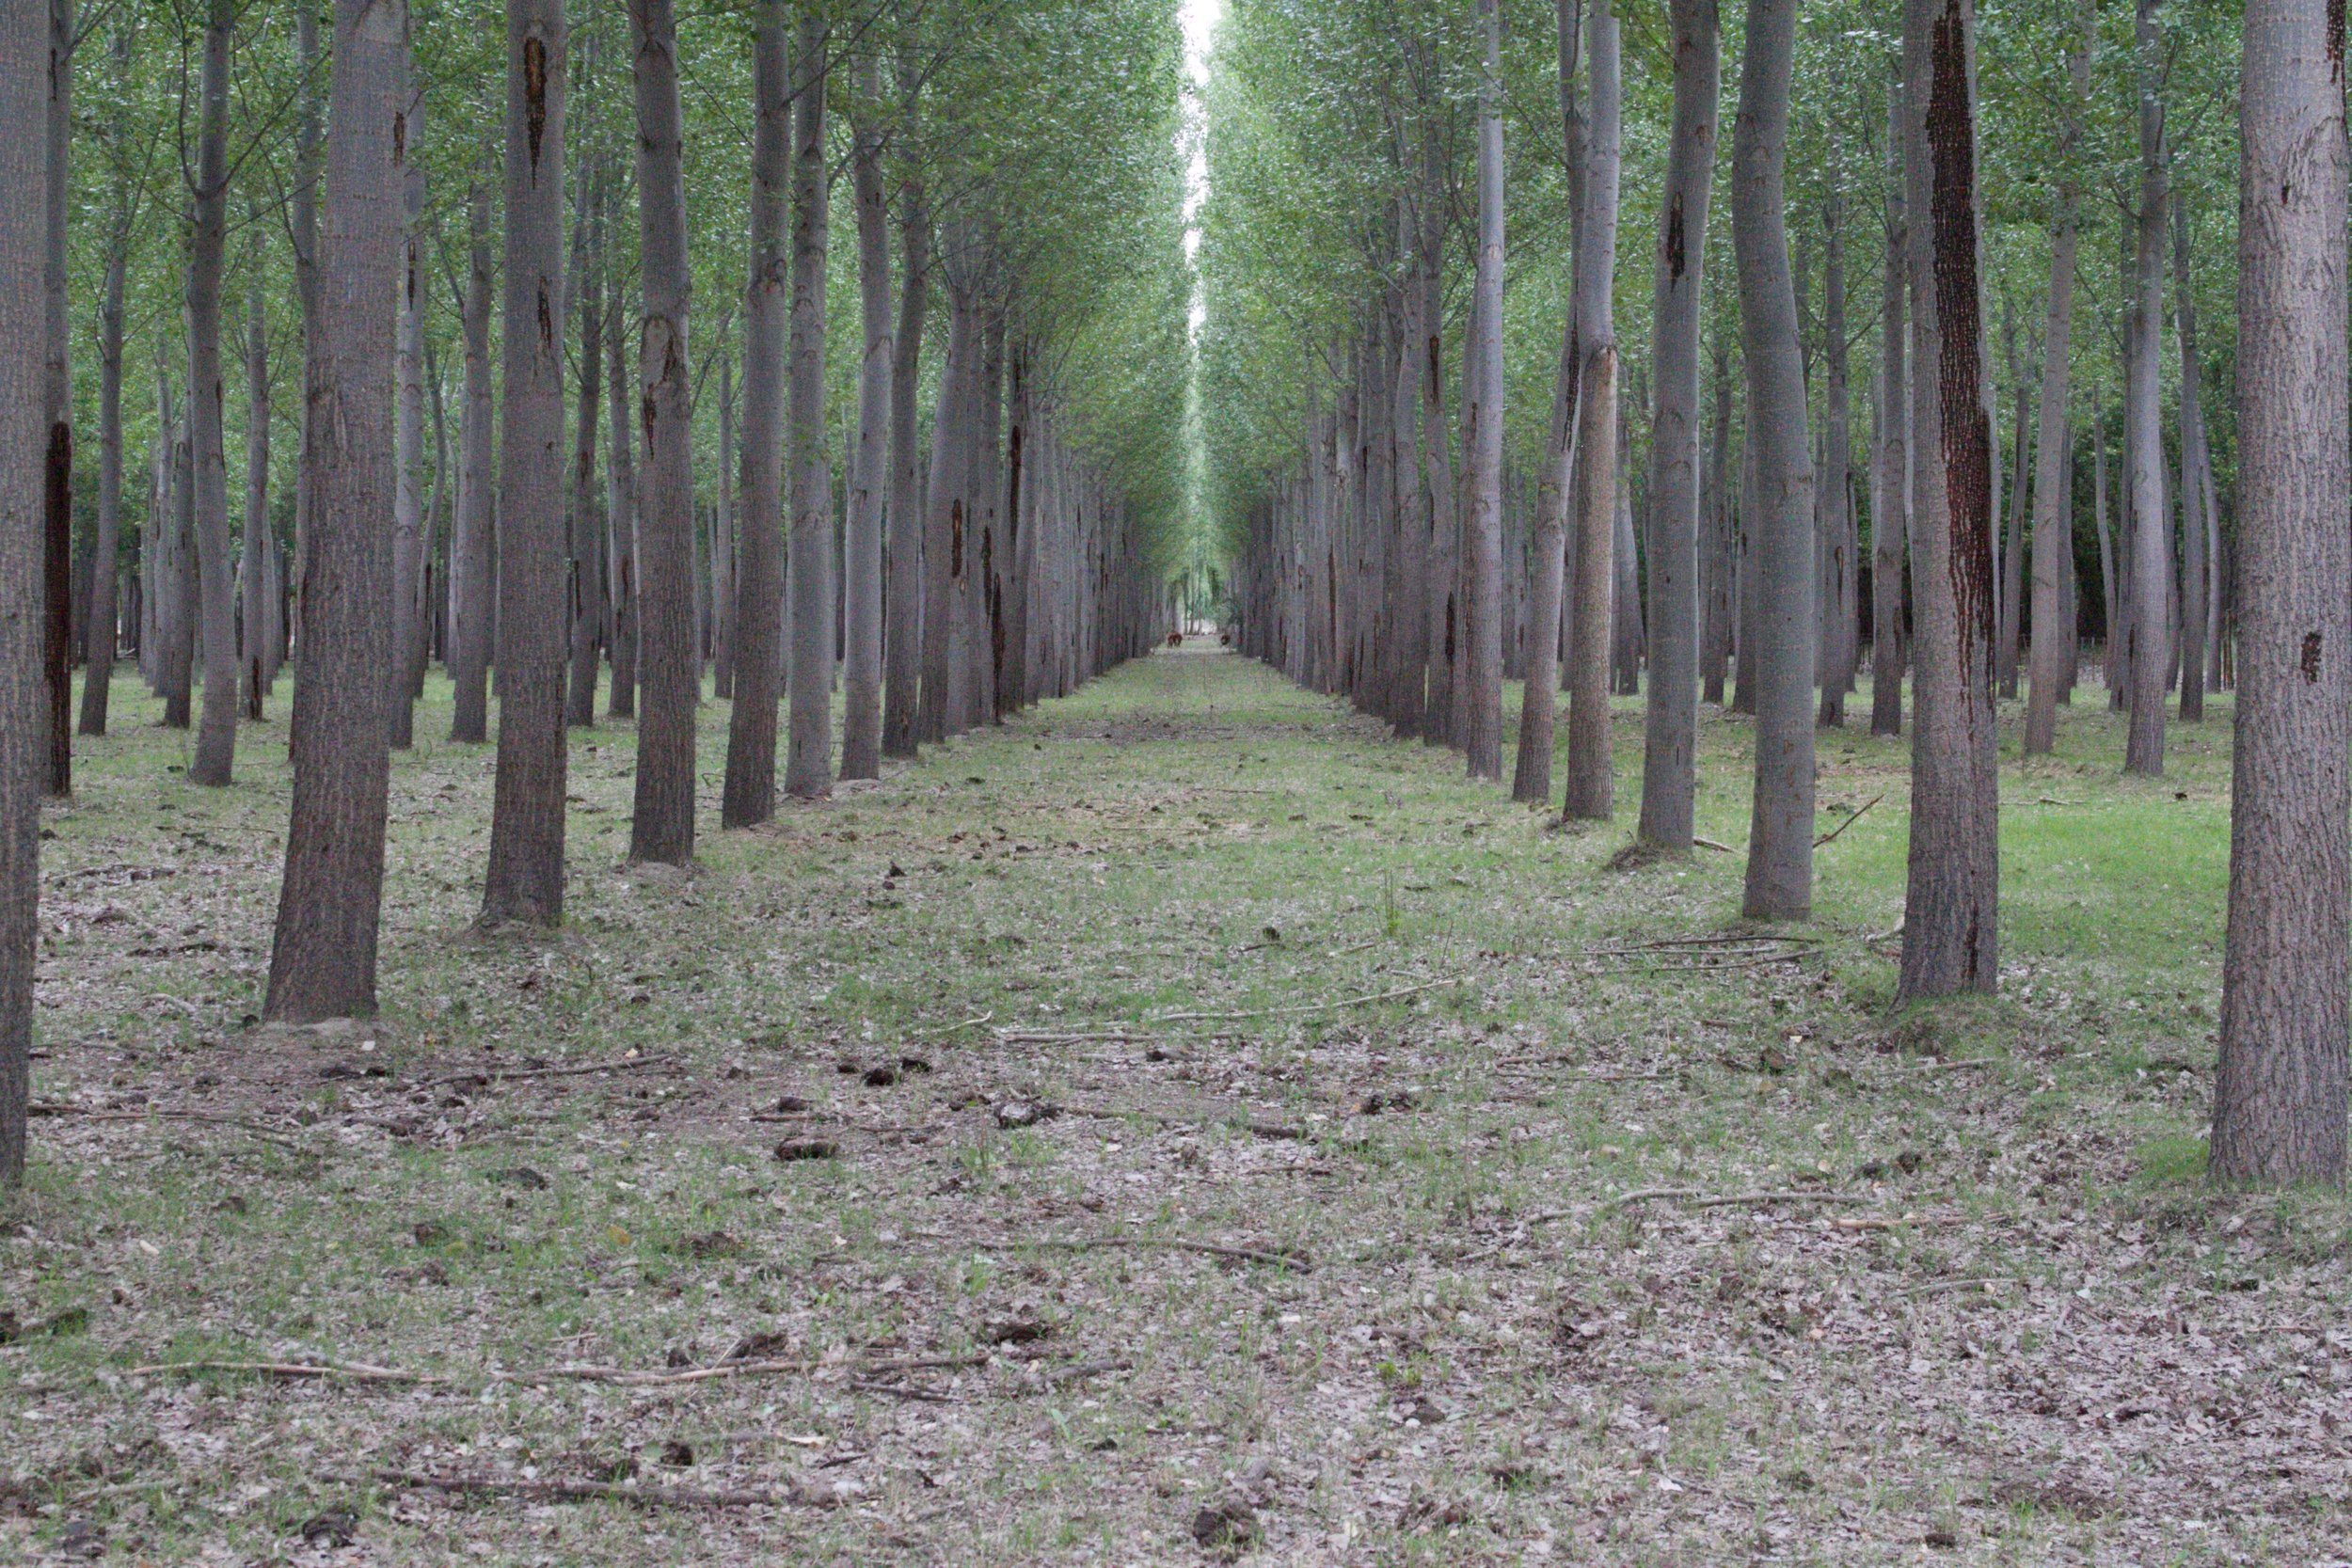 The Saralegui Farm grows poplar timber in addition to fruit. Timber is a low-maintenance, long-term investment, and Sandro manages cattle in the understory of this plantation. The soil is sandy, and the poplar roots are vigorous, which allows for infrequent herd moves.